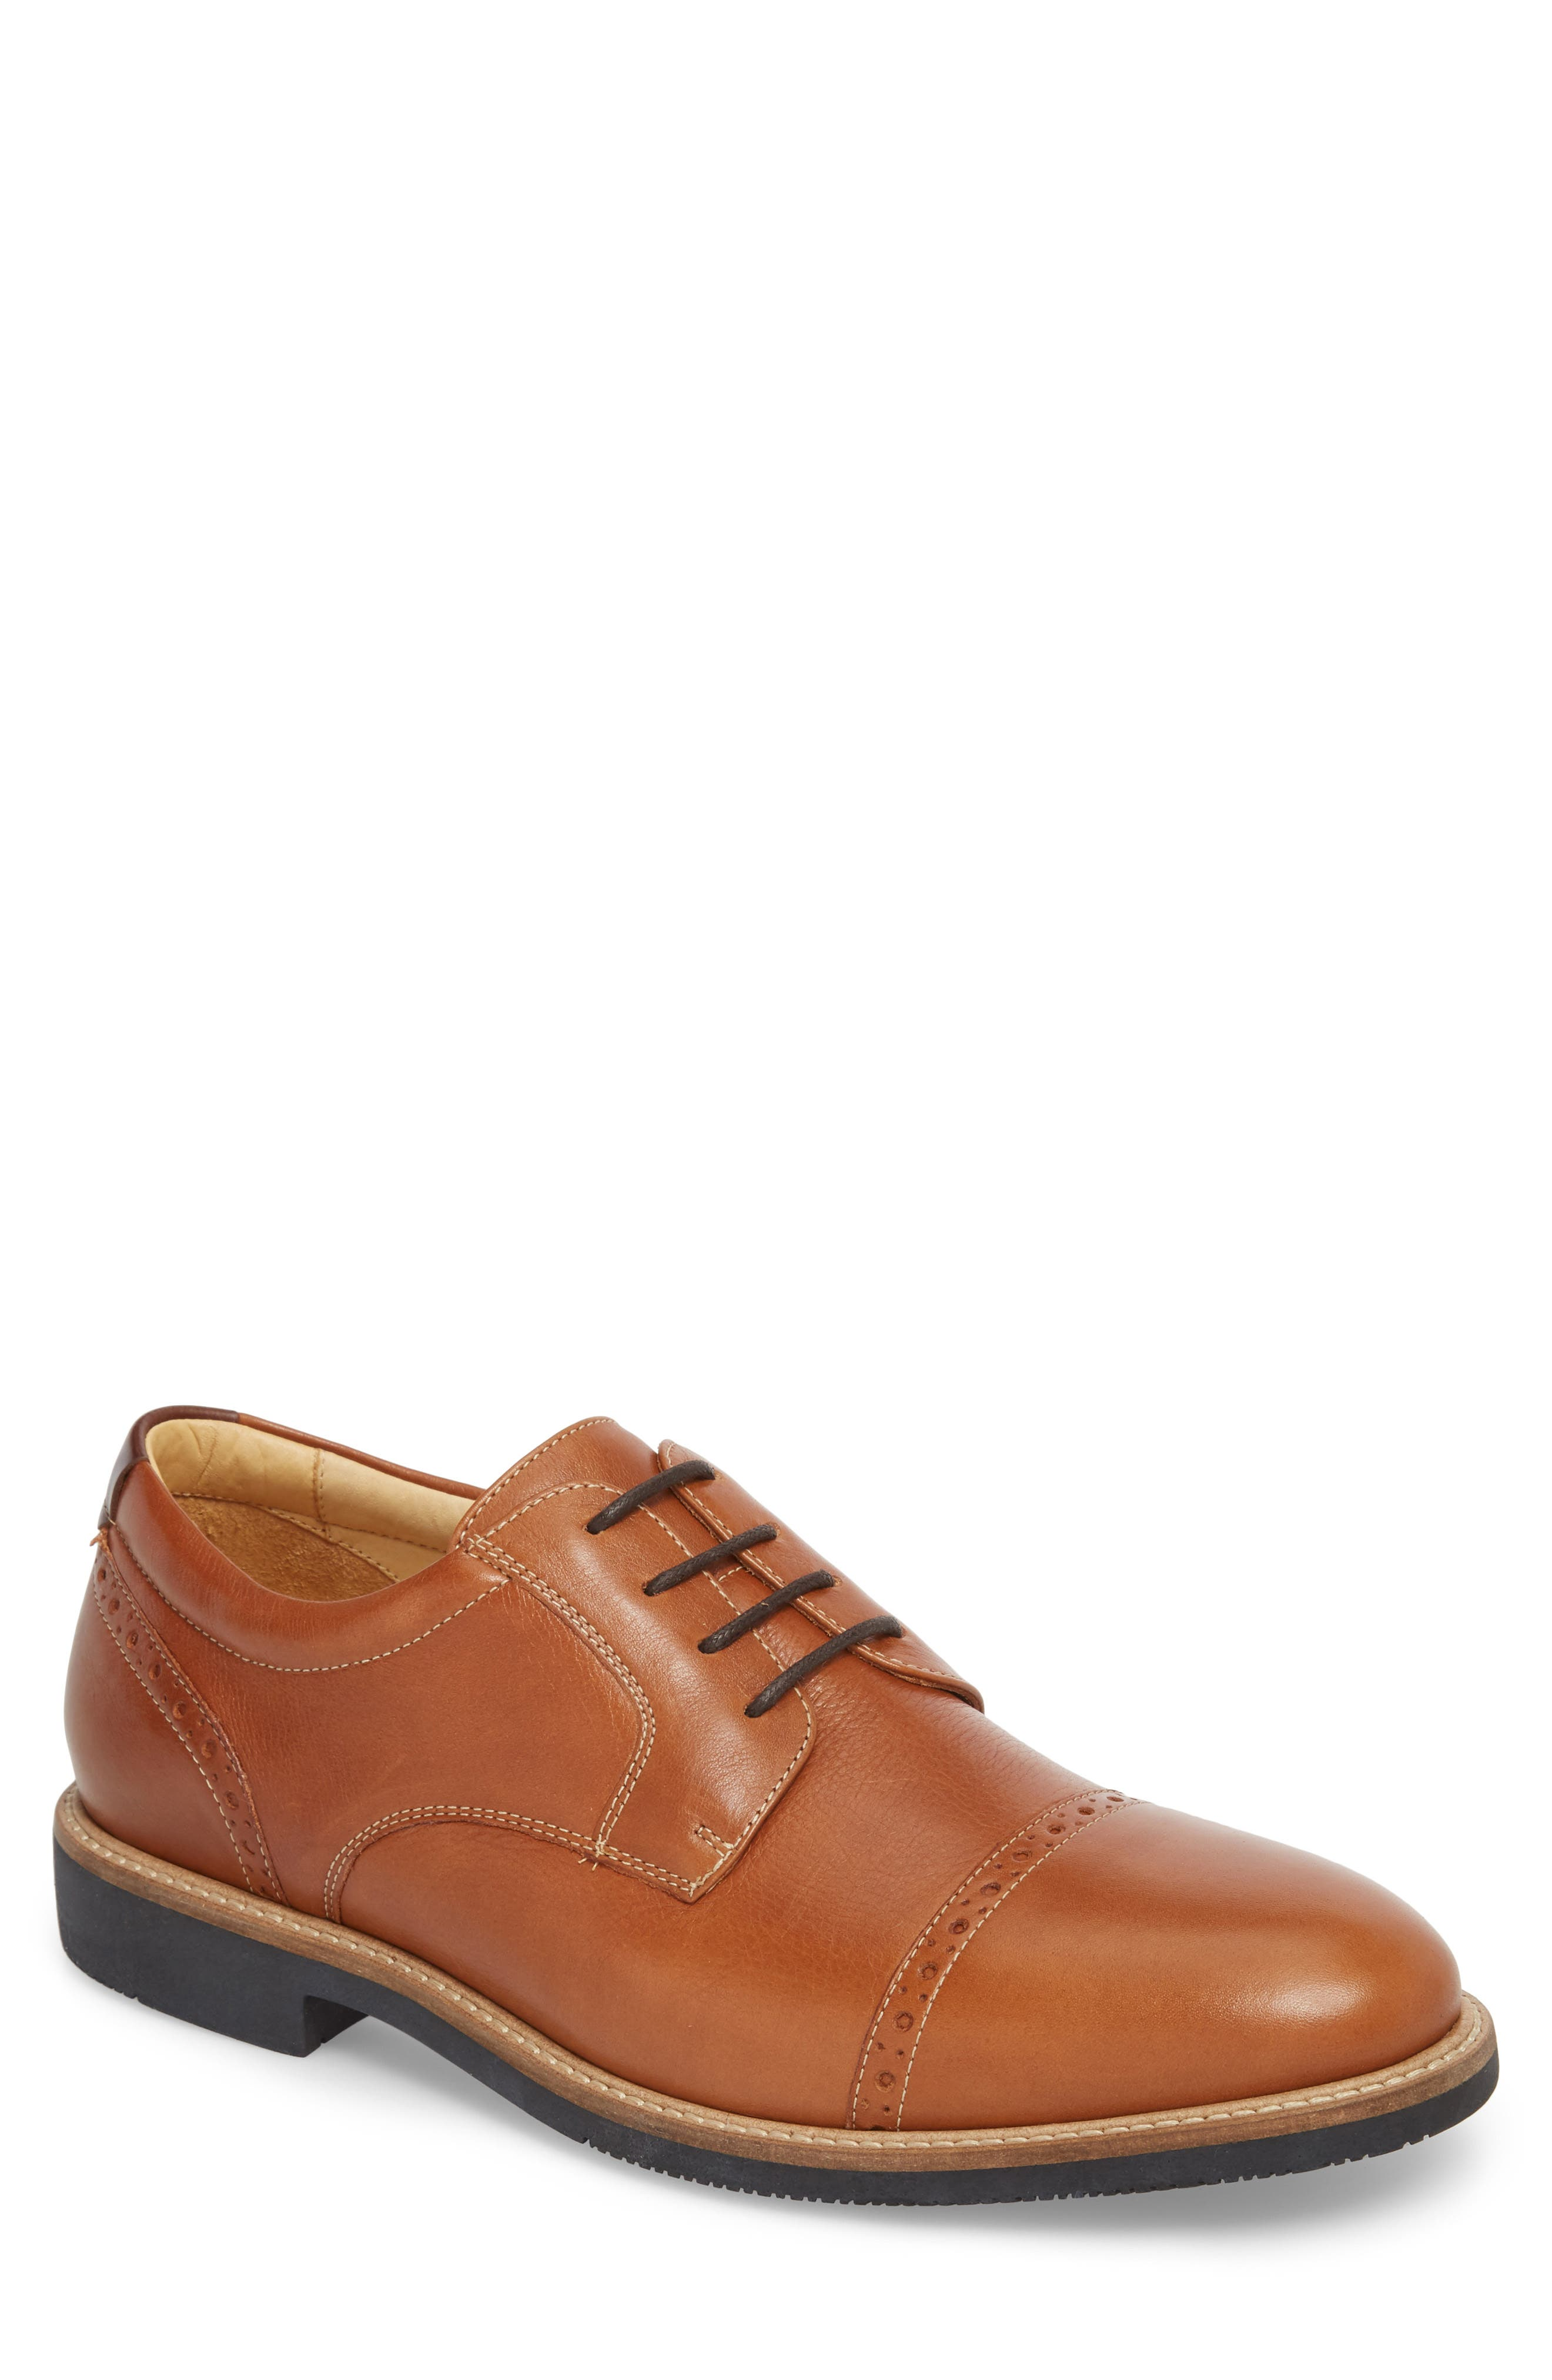 JOHNSTON & MURPHY,                             Barlow Cap Toe Derby,                             Main thumbnail 1, color,                             TAN LEATHER